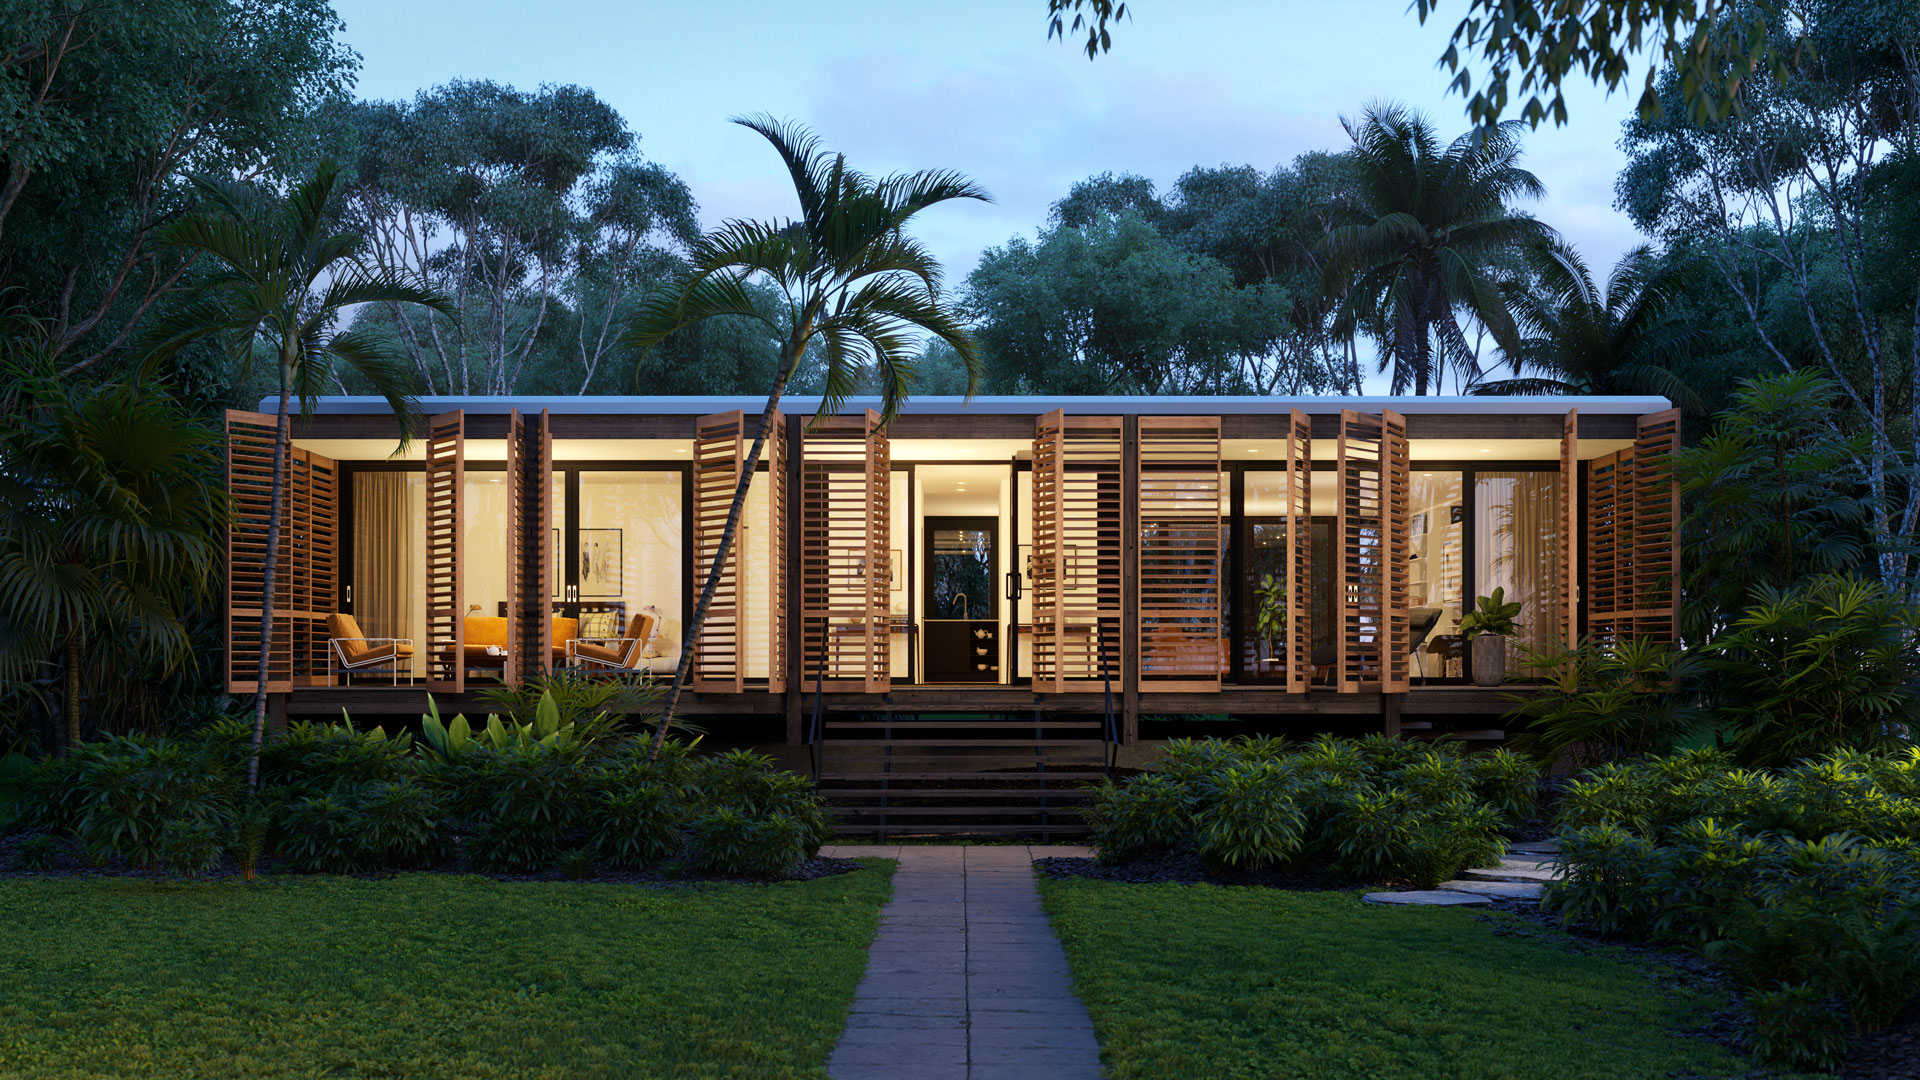 Brillhart house in miami visualization